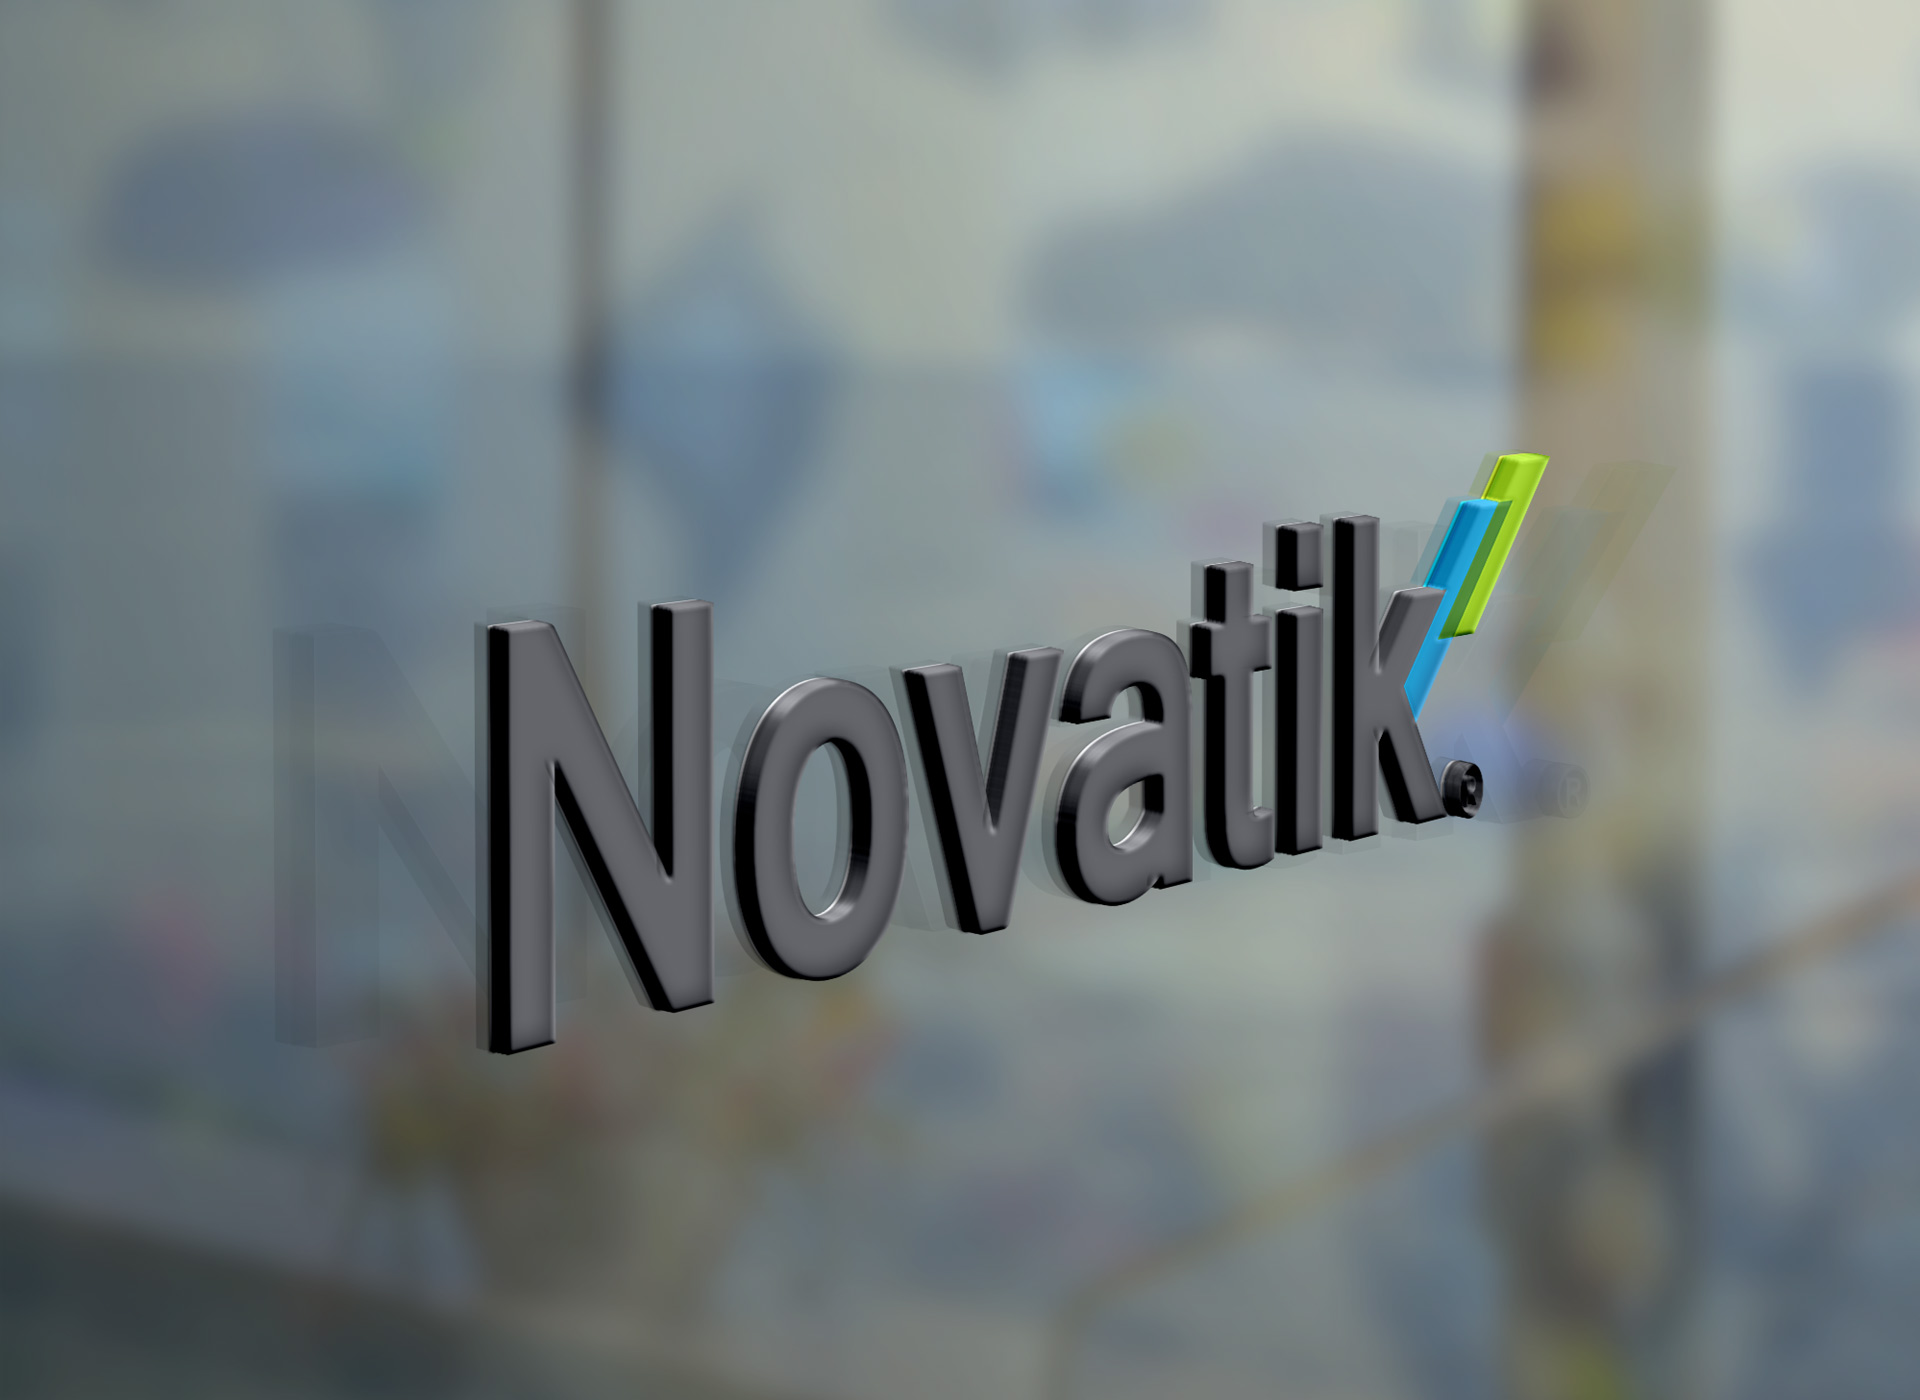 novatik portofoliu branding window logo